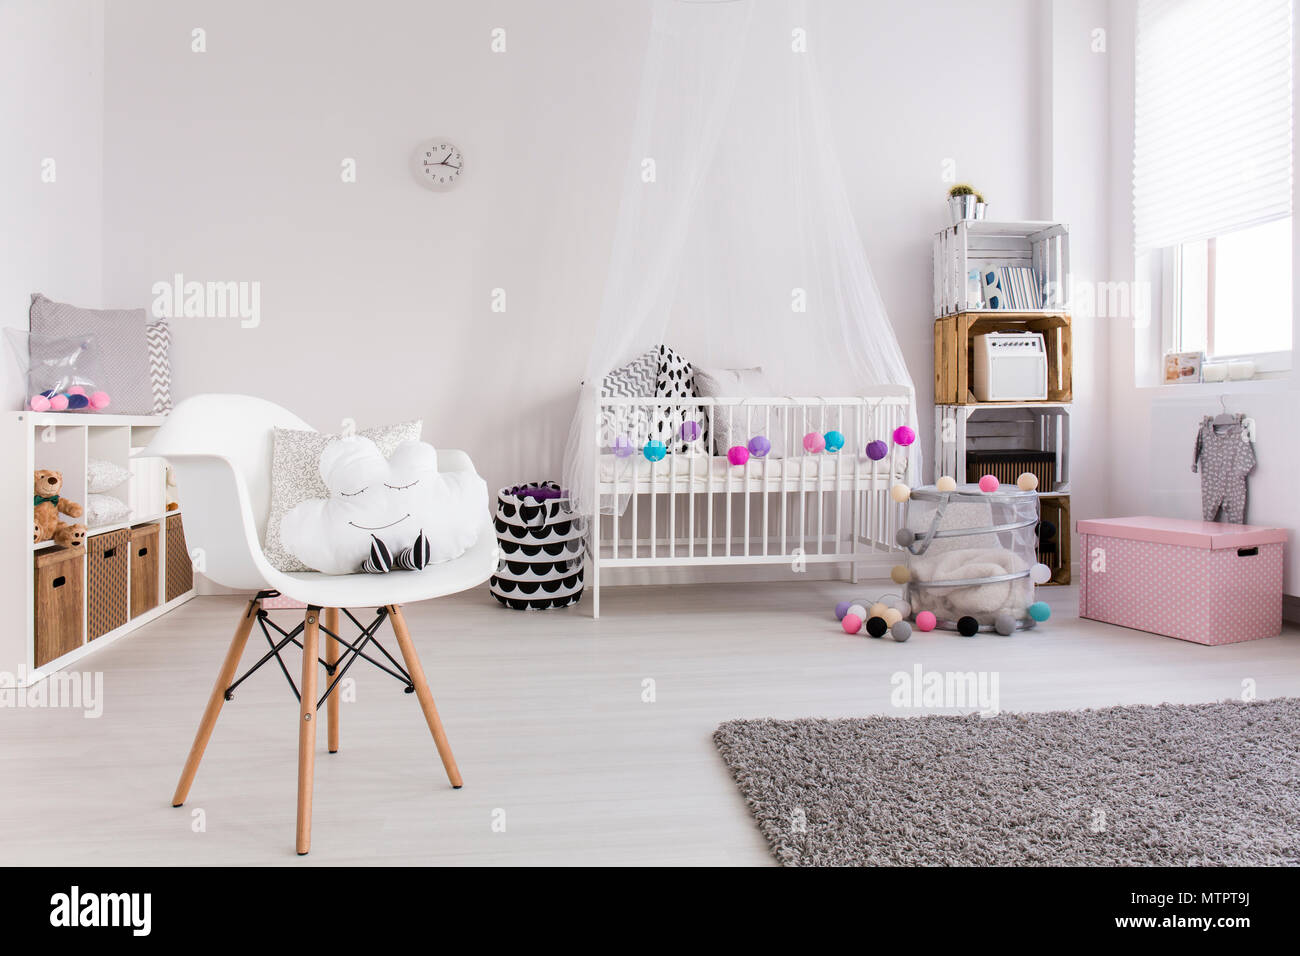 spacious bedroom of baby girl wooden floor with carpet white rh alamy com